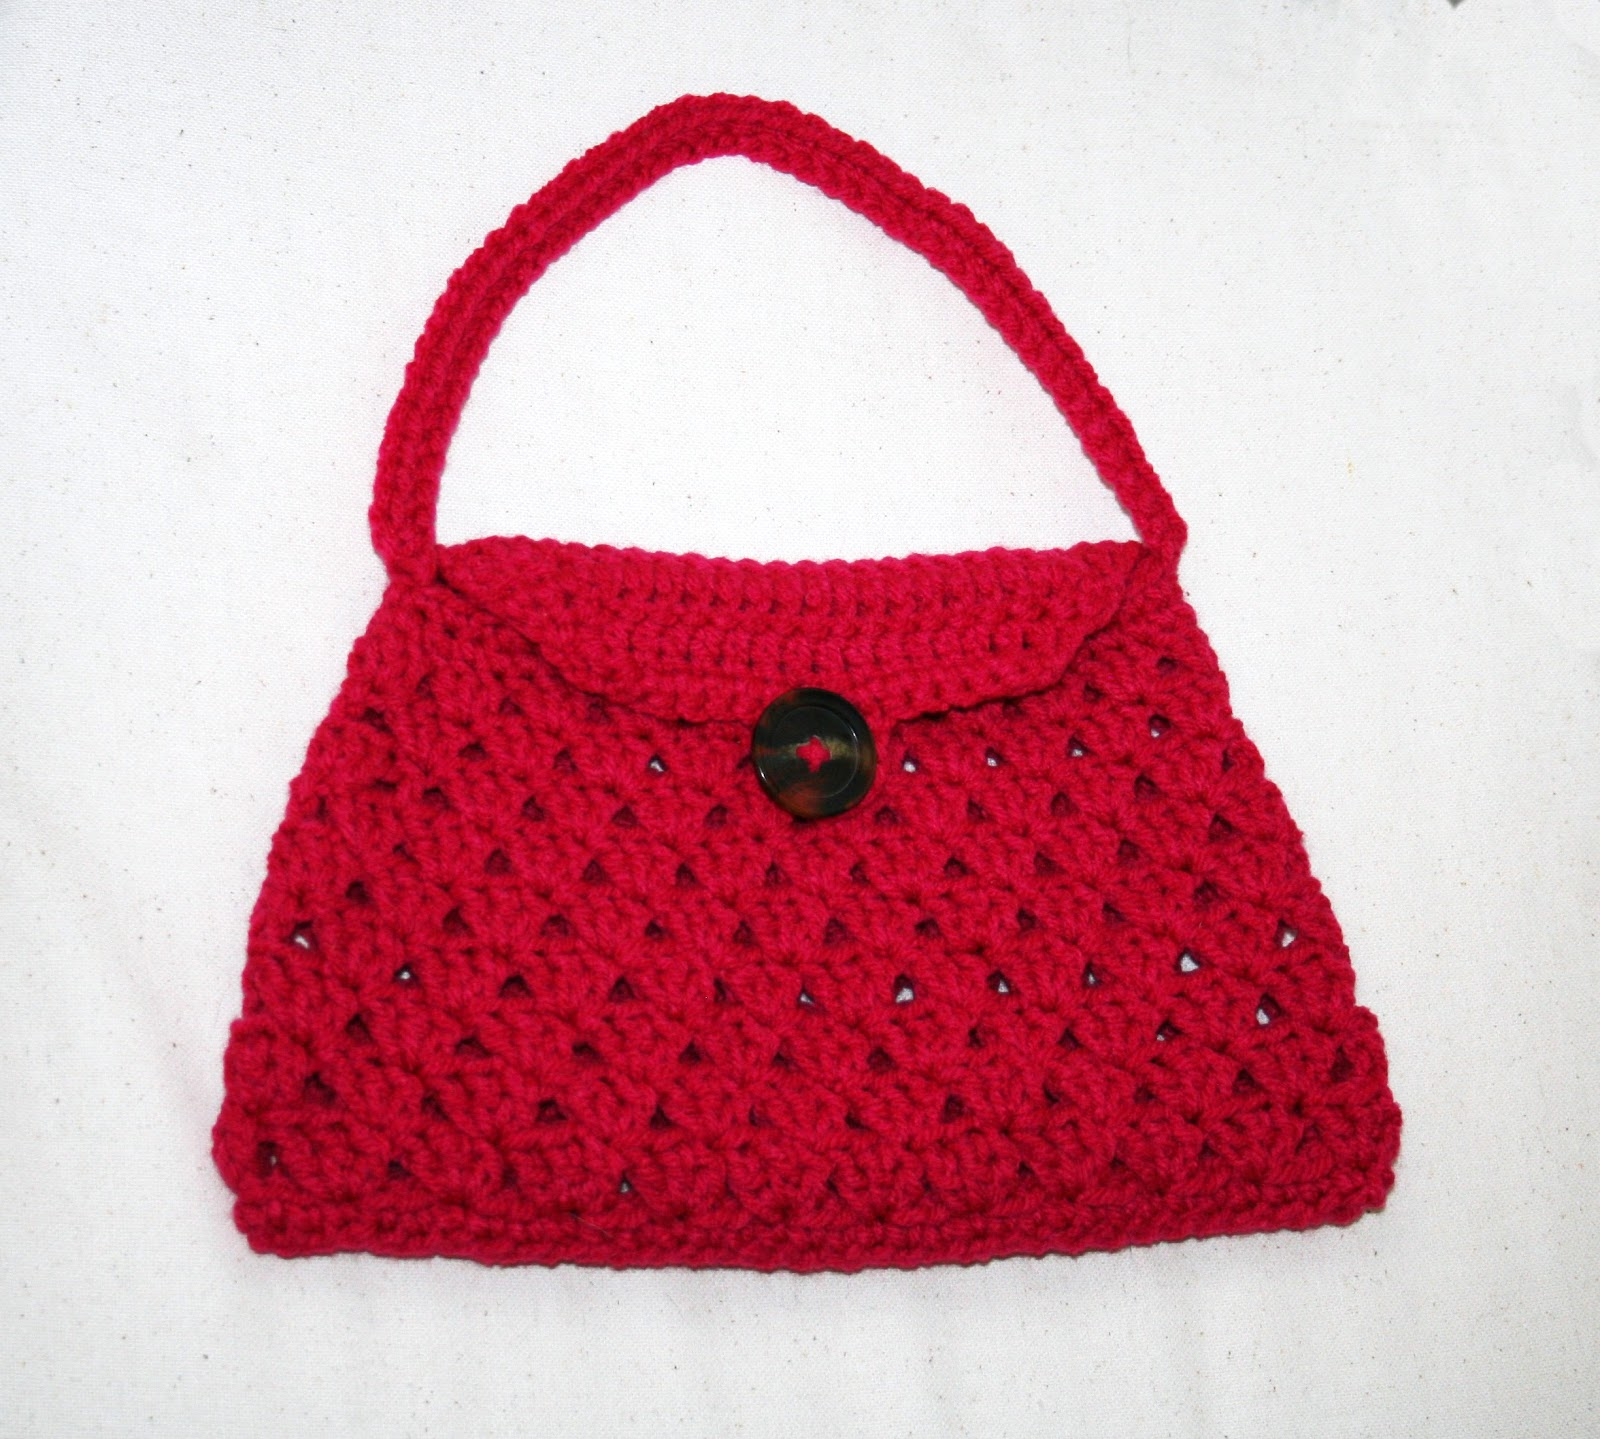 Free Crochet Patterns Purses Handbags : Tampa Bay Crochet: Free Crochet Pattern: Stylish Crochet ...